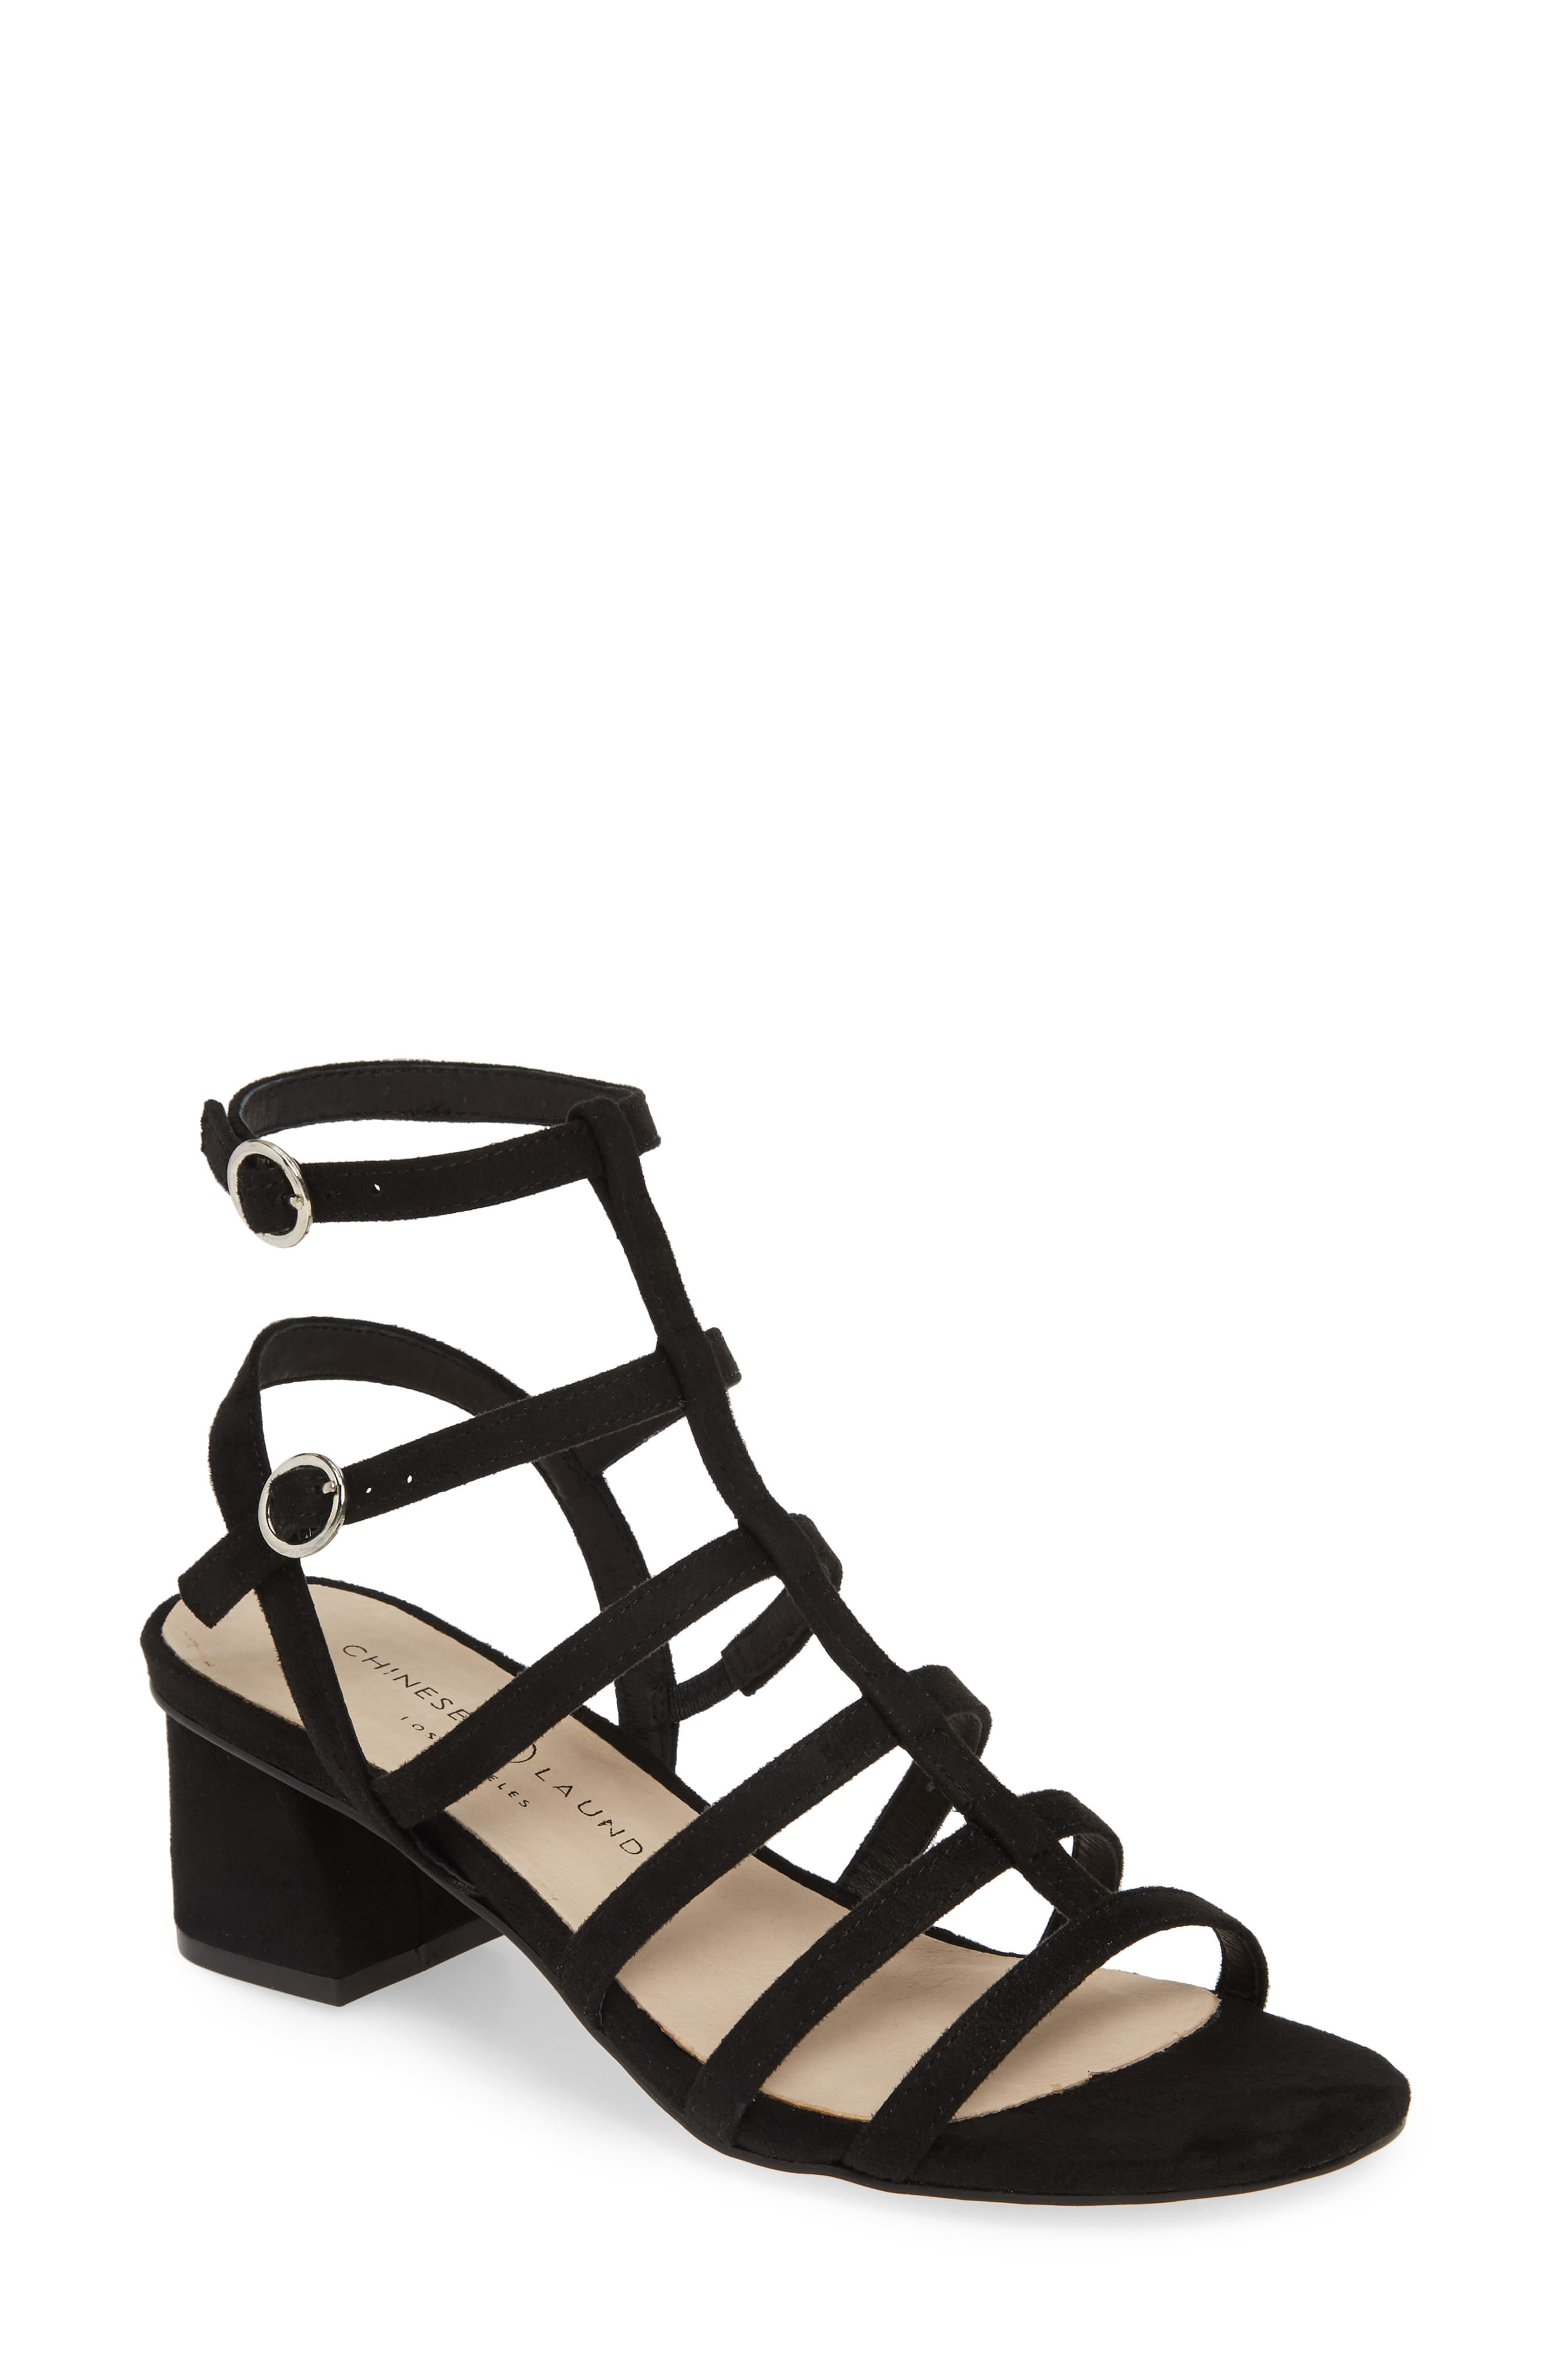 Chinese Laundry Monroe Strappy Cage Sandal Women In 2020 Caged